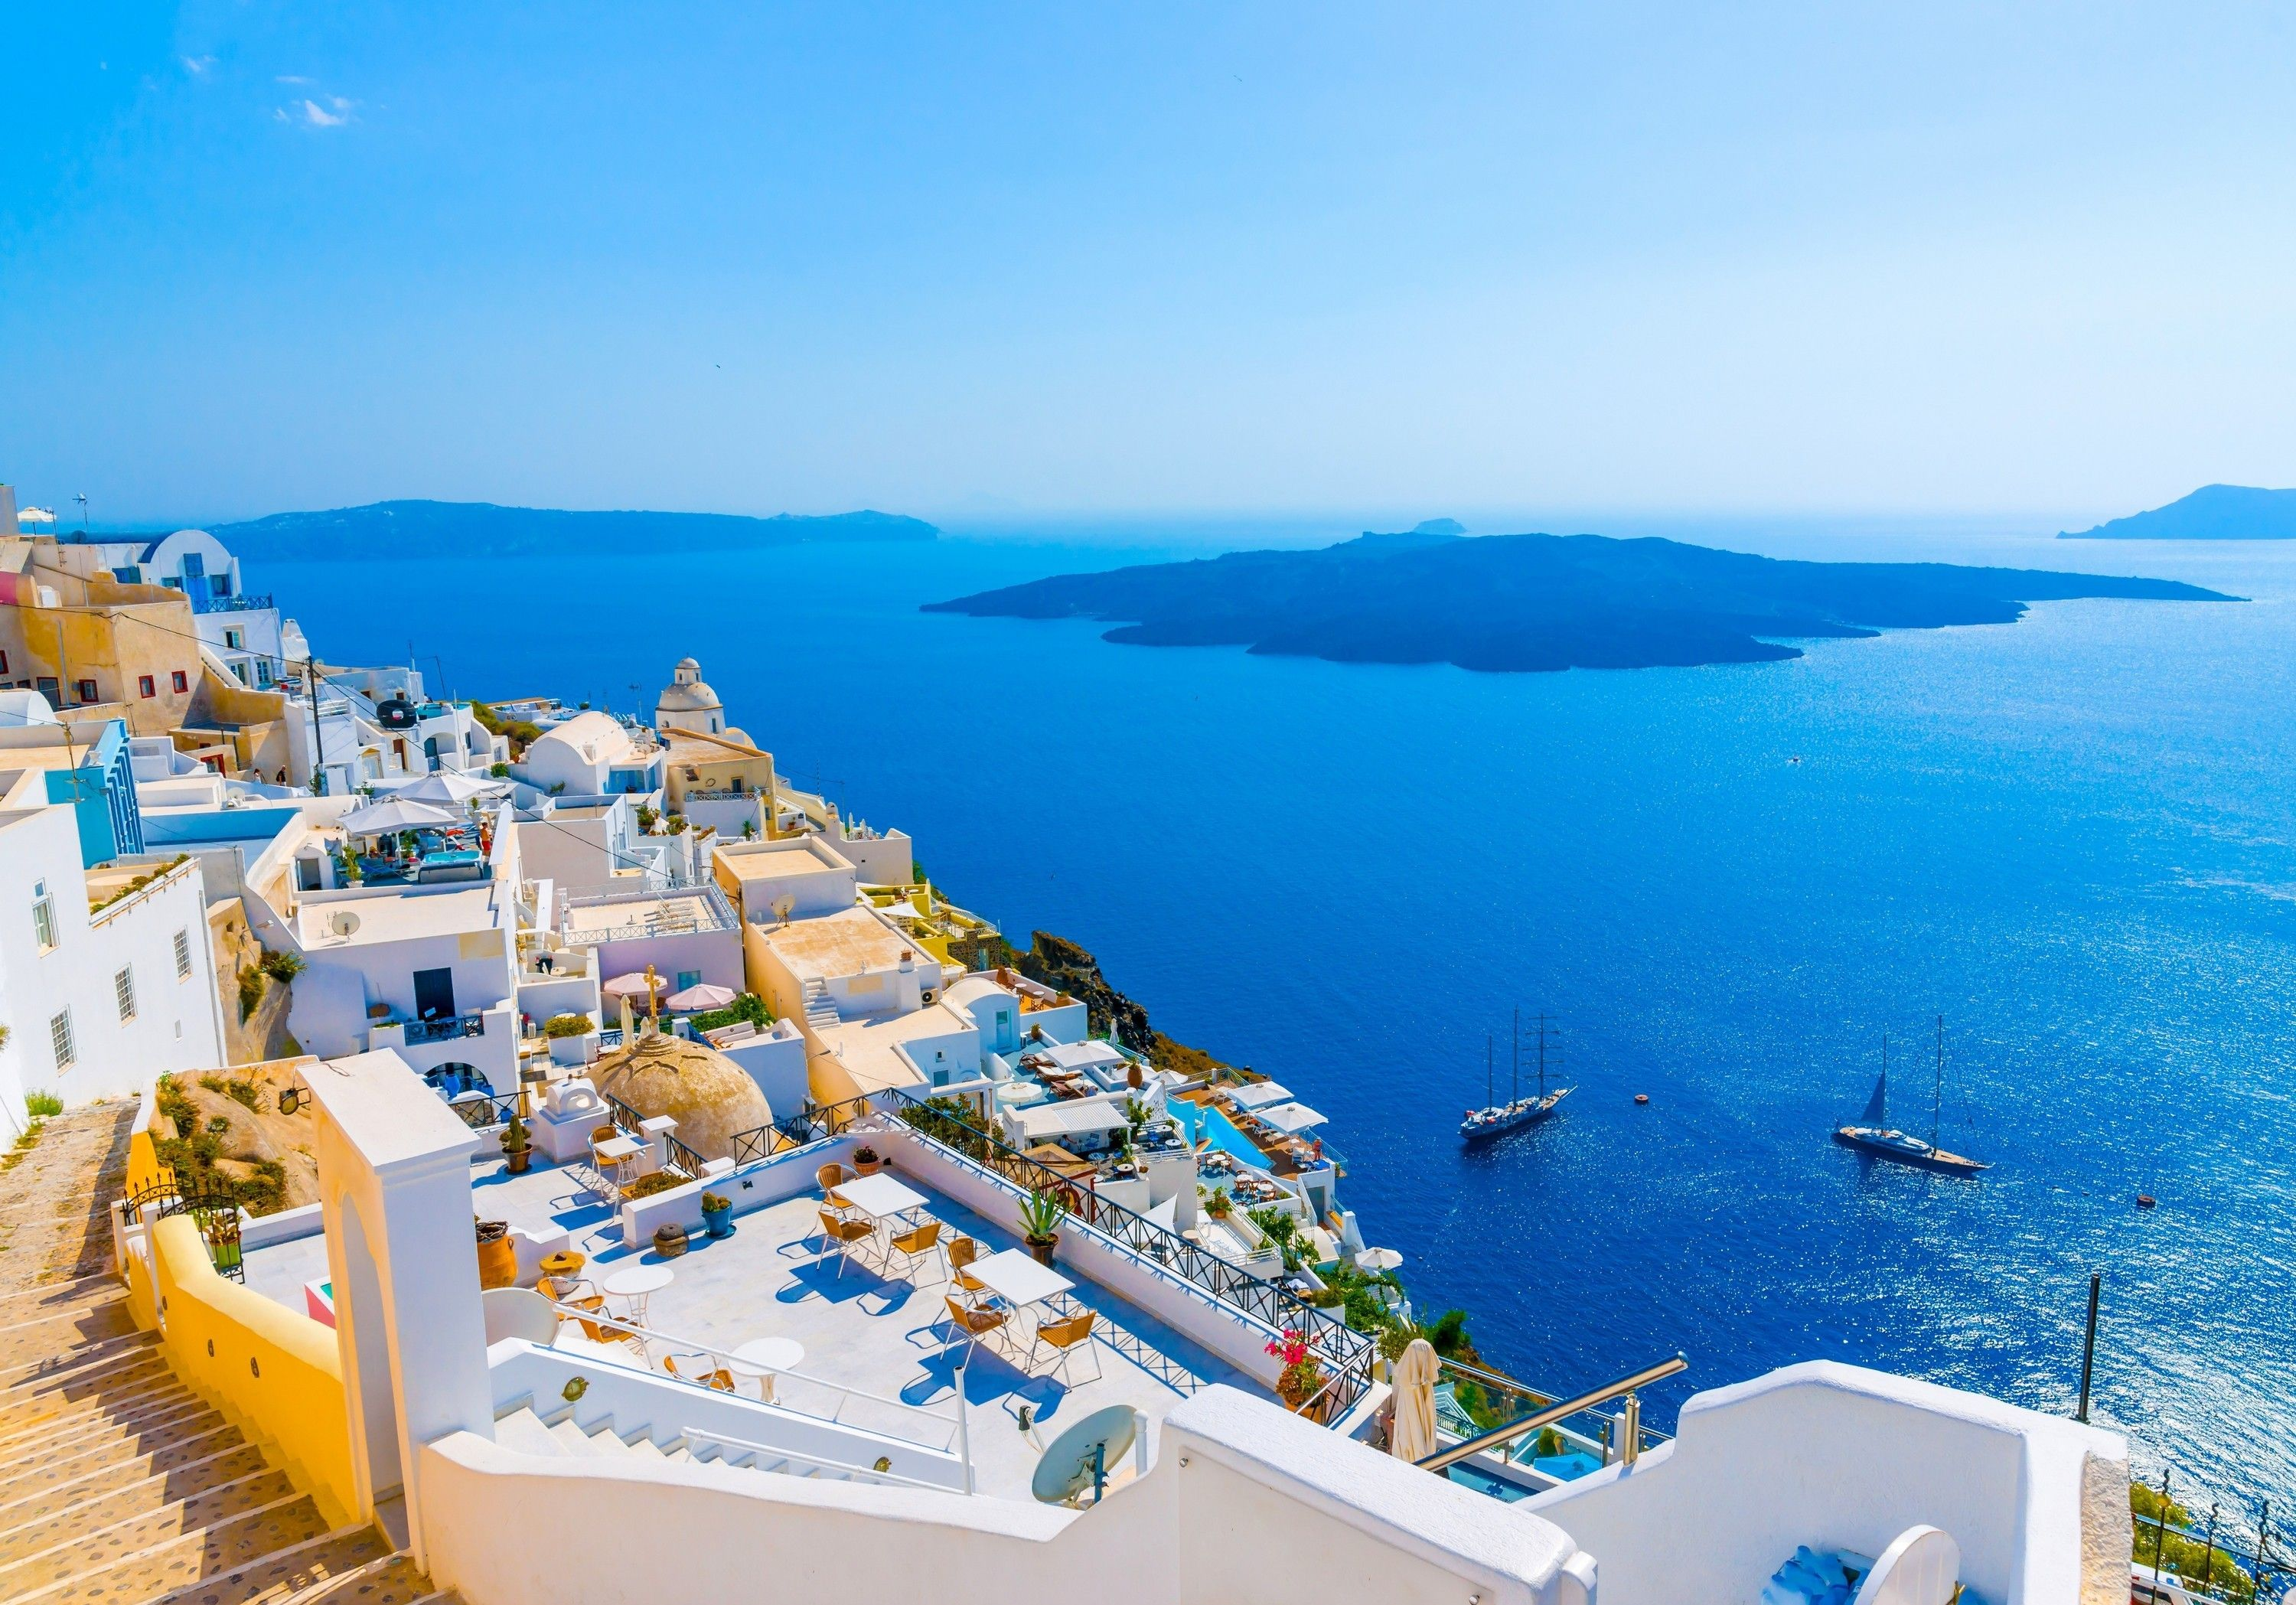 70 Santorini Wallpapers   Download at WallpaperBro 3000x2097